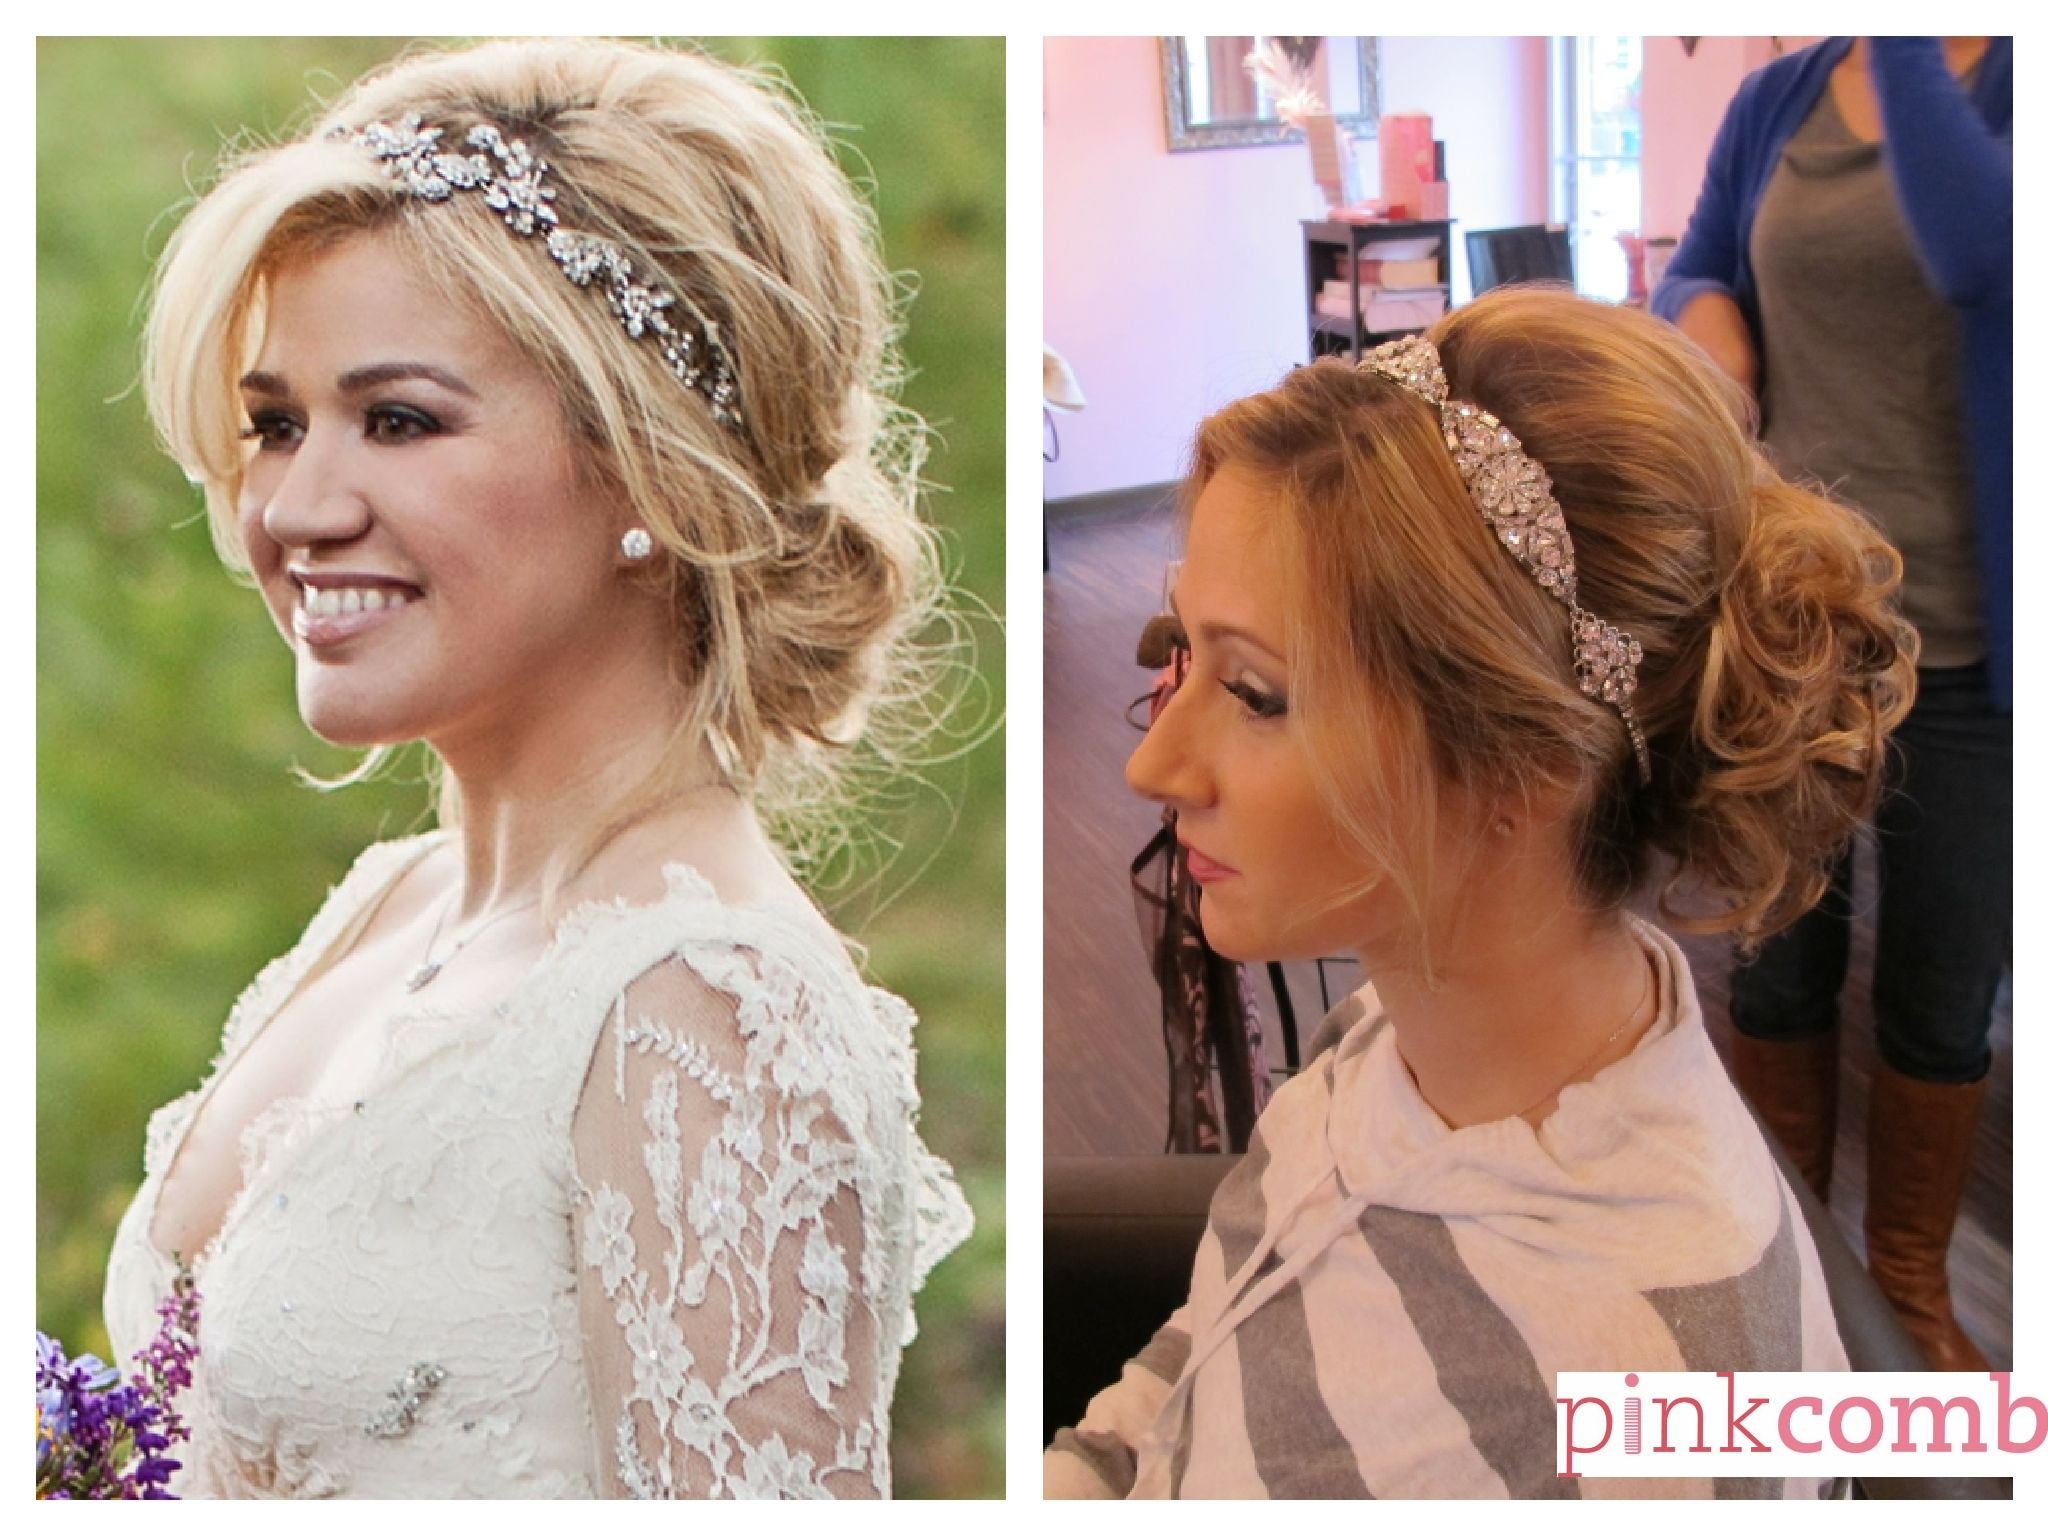 kelly clarkson inspired loose blonde updo with curls ad headband